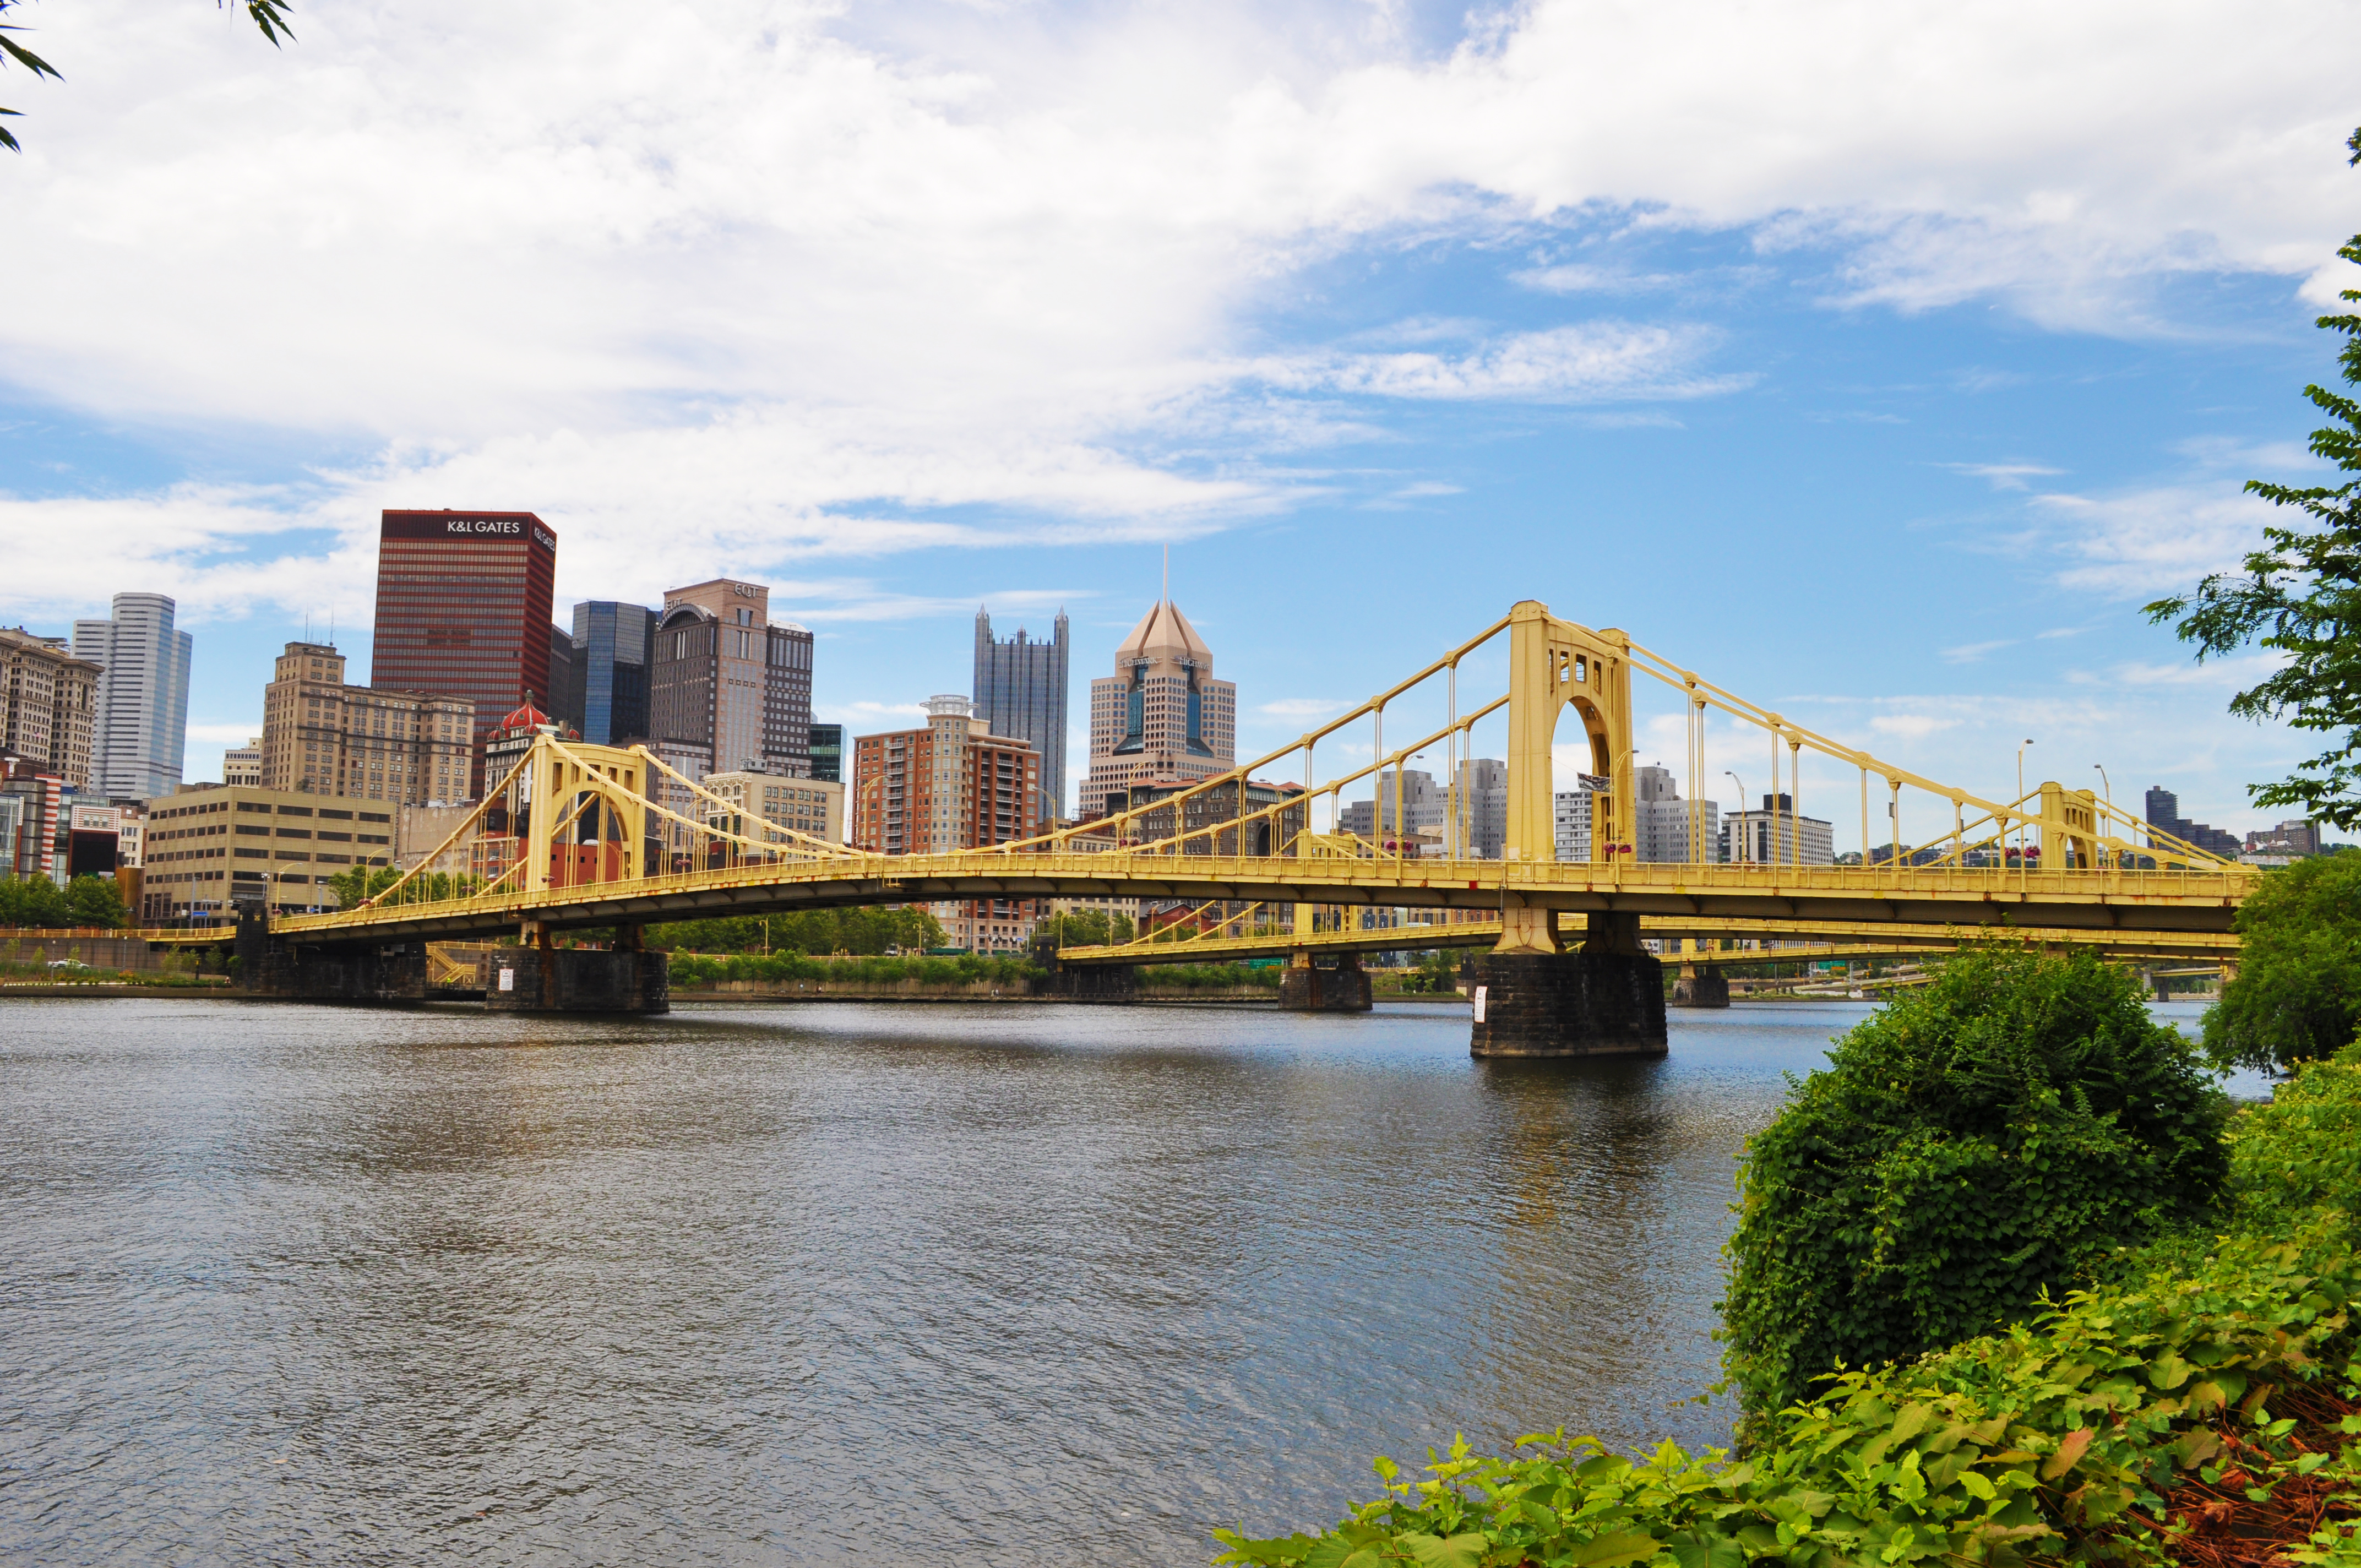 The Rachel Carson Bridge spans the Allegheny River and connects Pittsburgh's downtown with its North Shore.